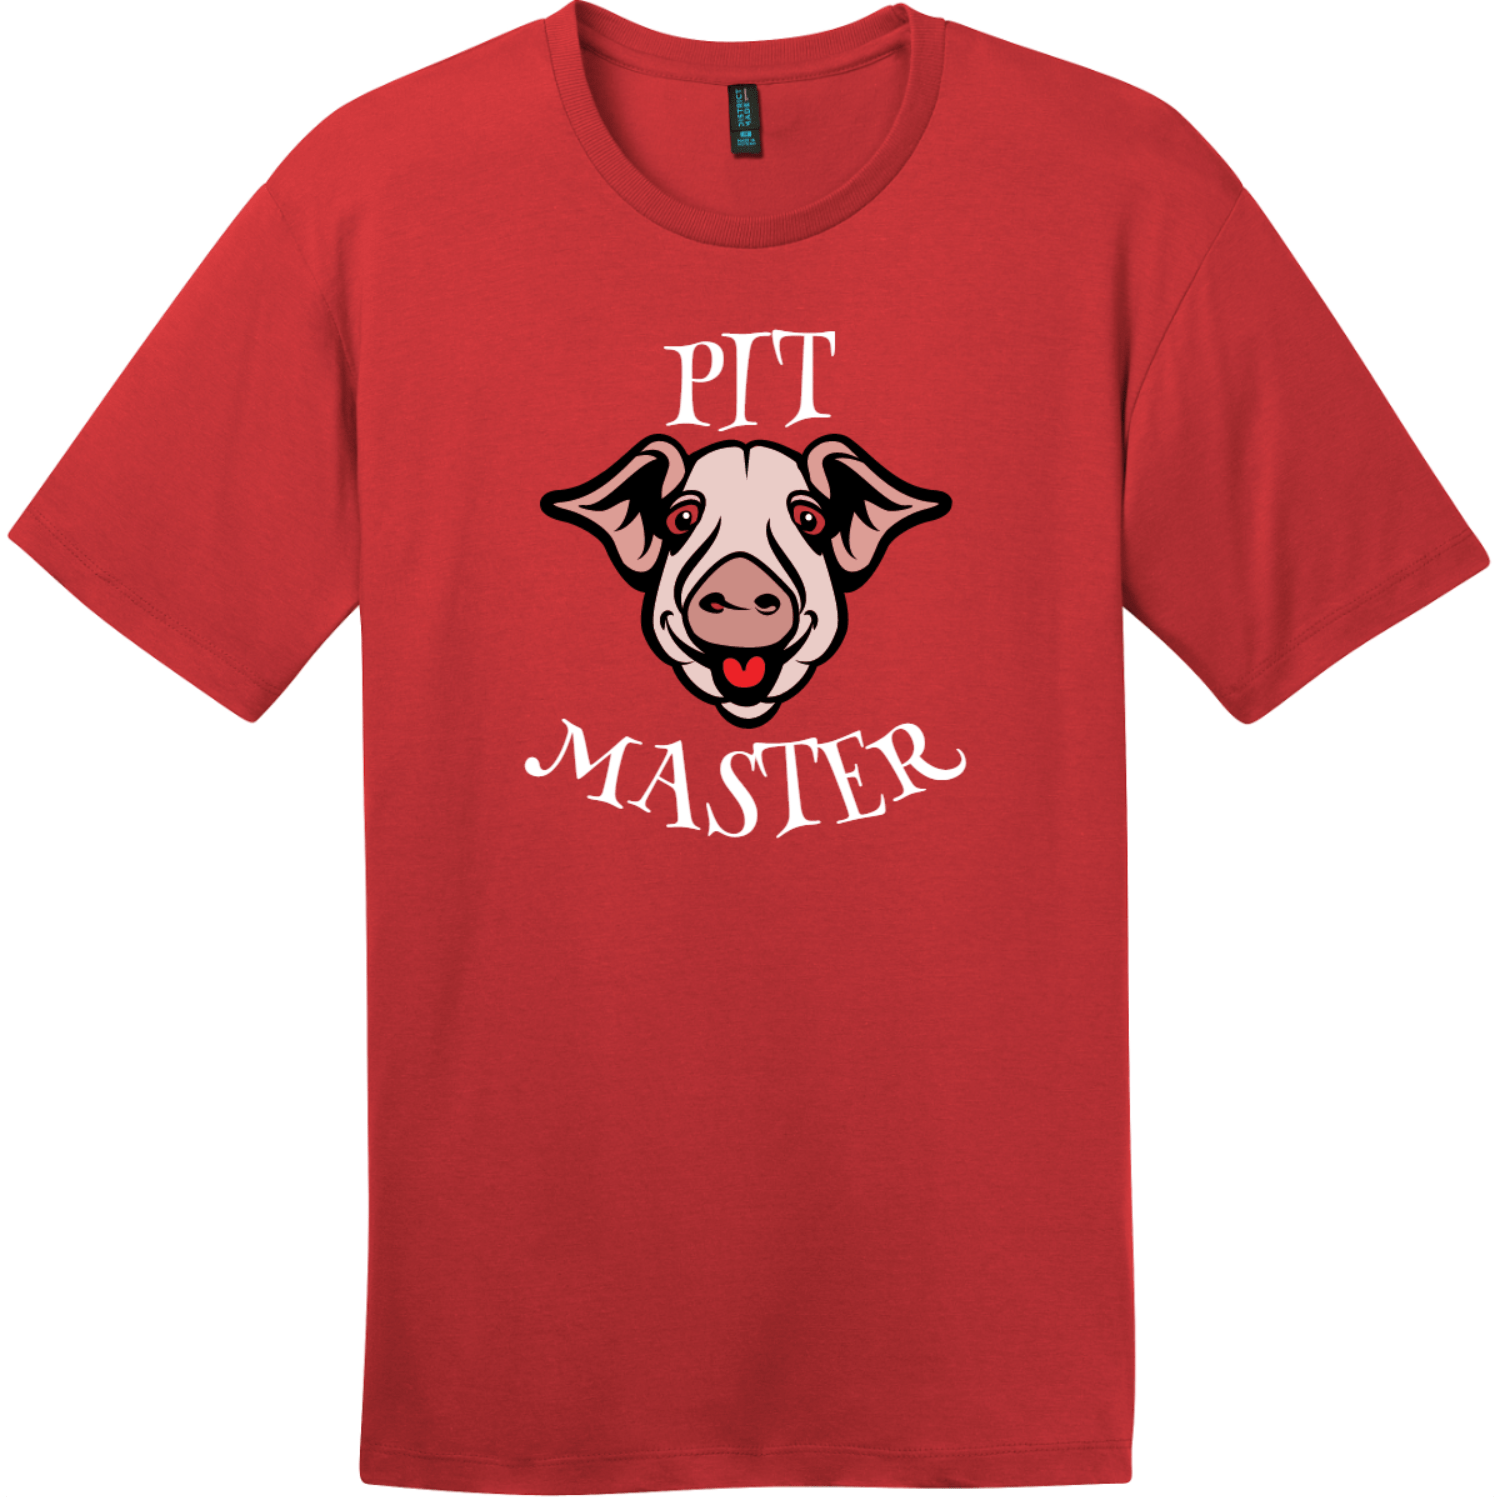 BBQ Pit Master Pig T-Shirt Classic Red District Perfect Weight Tee DT104